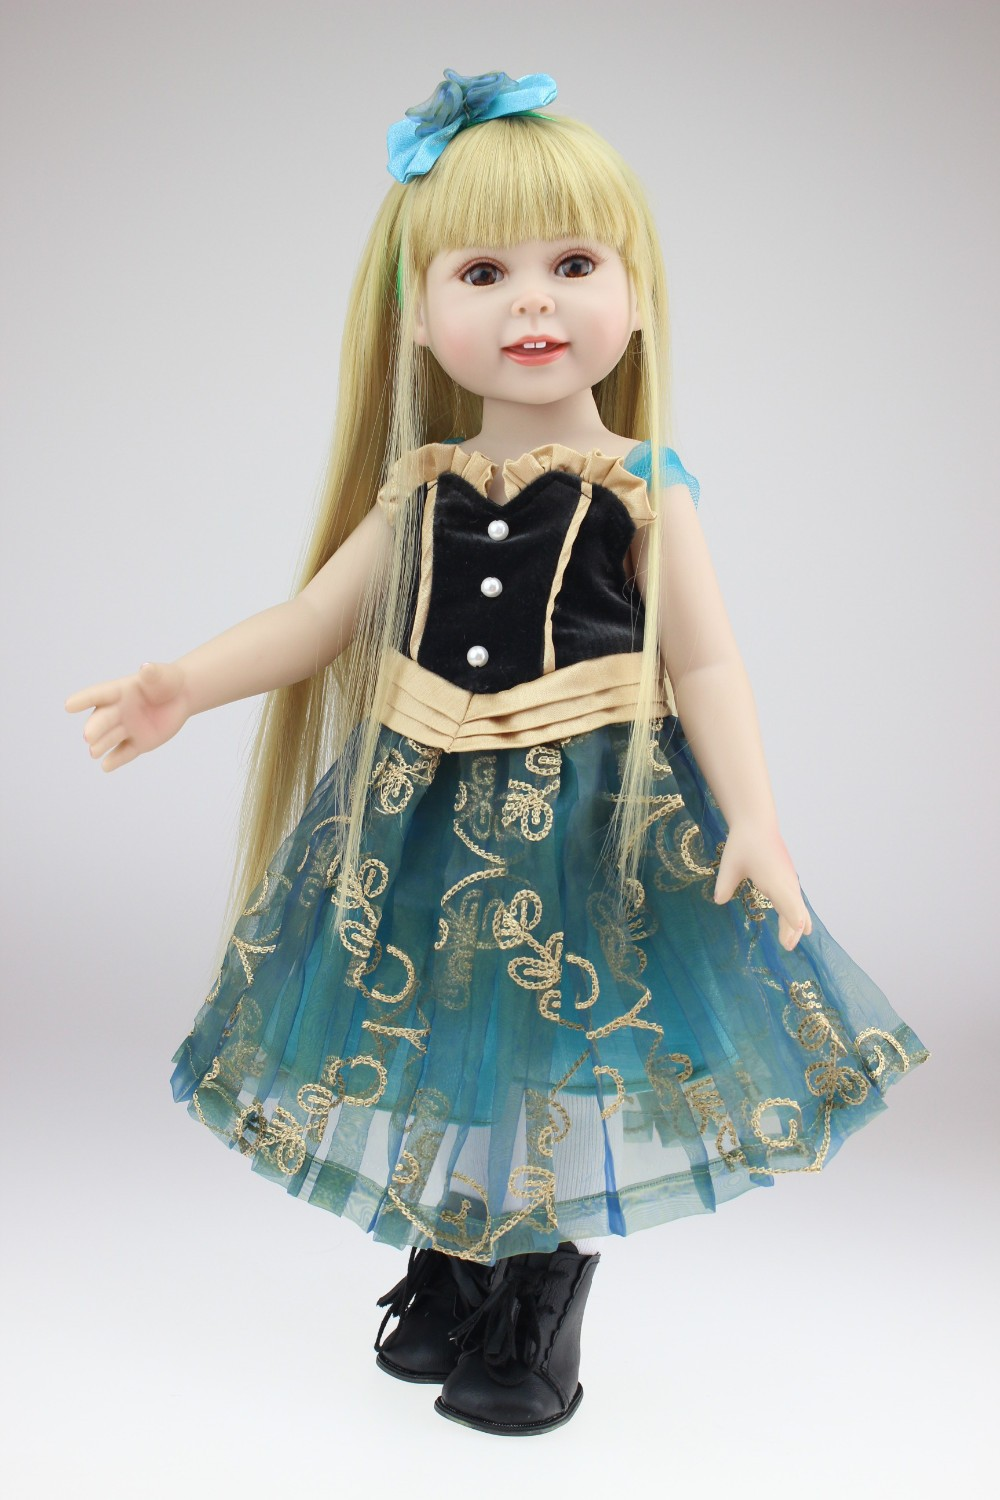 New design 18inches American girl doll Journey Girl Dollie& me New Year present great girl gift lifelike american 18 inches girl doll prices toy for children vinyl princess doll toys girl newest design